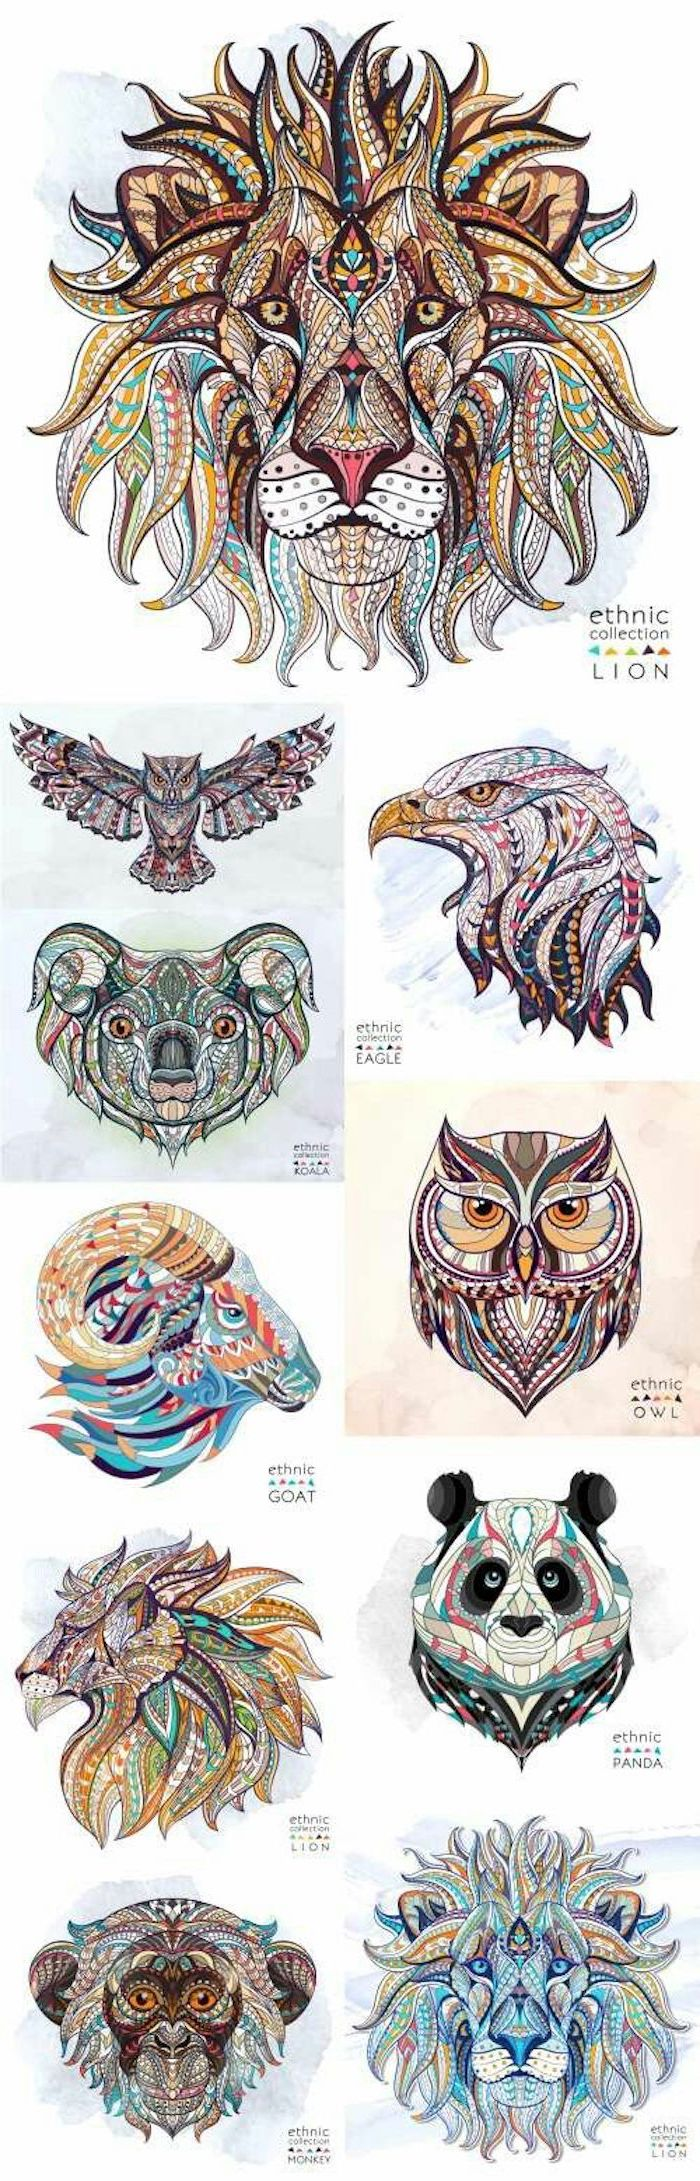 colourful animal head drawings, tattoo designs for men, white background